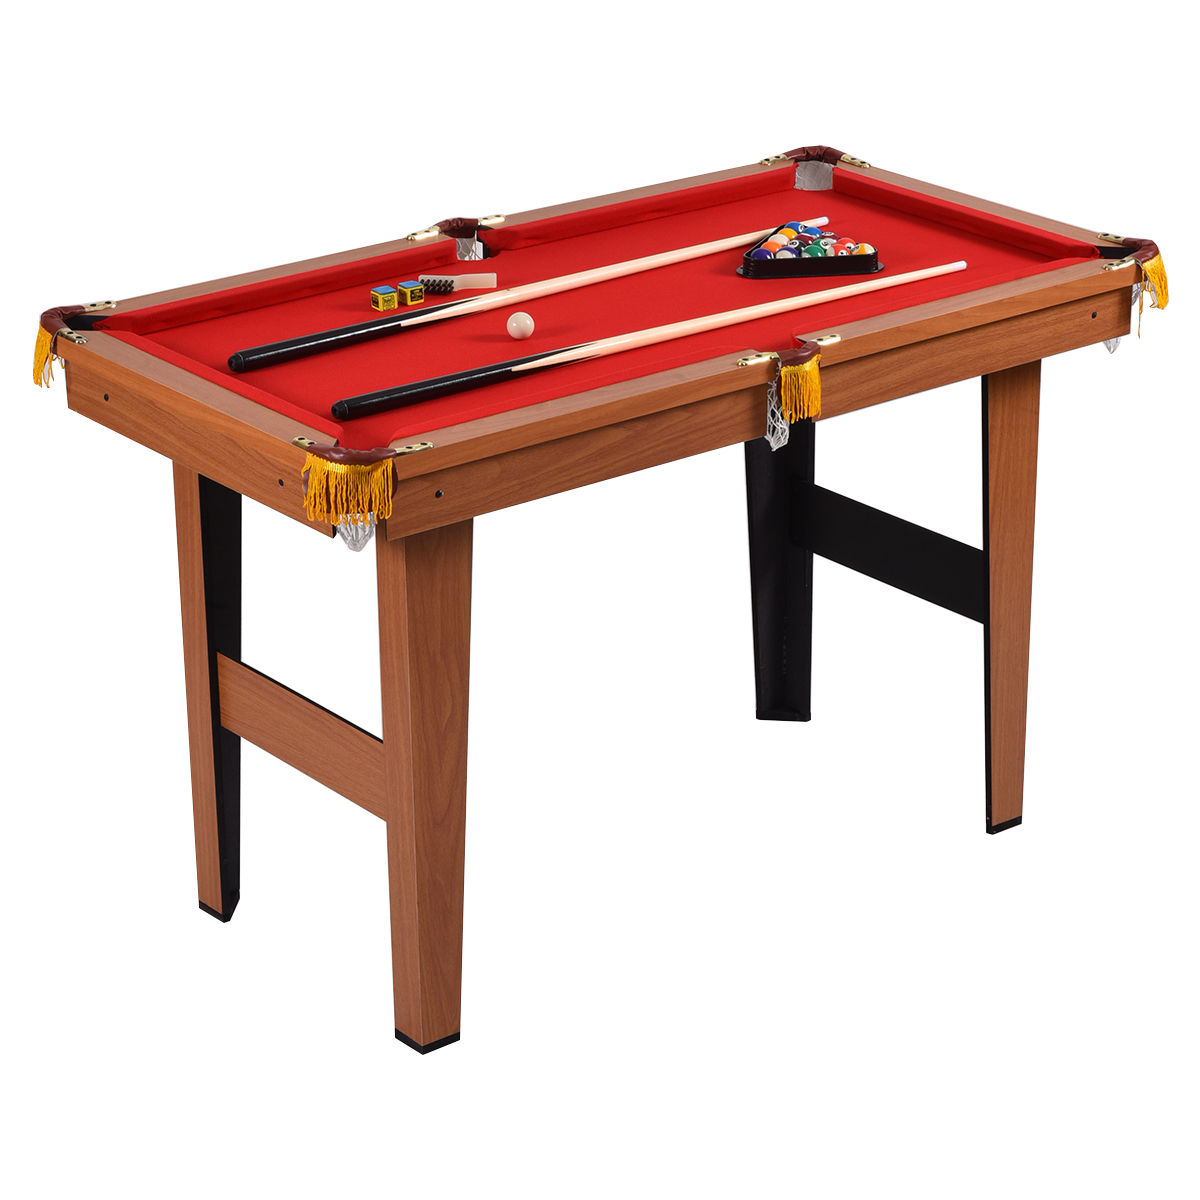 Costway 48'' Mini Table Top Pool Table Game Billiard Set Cues Balls Gift Indoor Sports